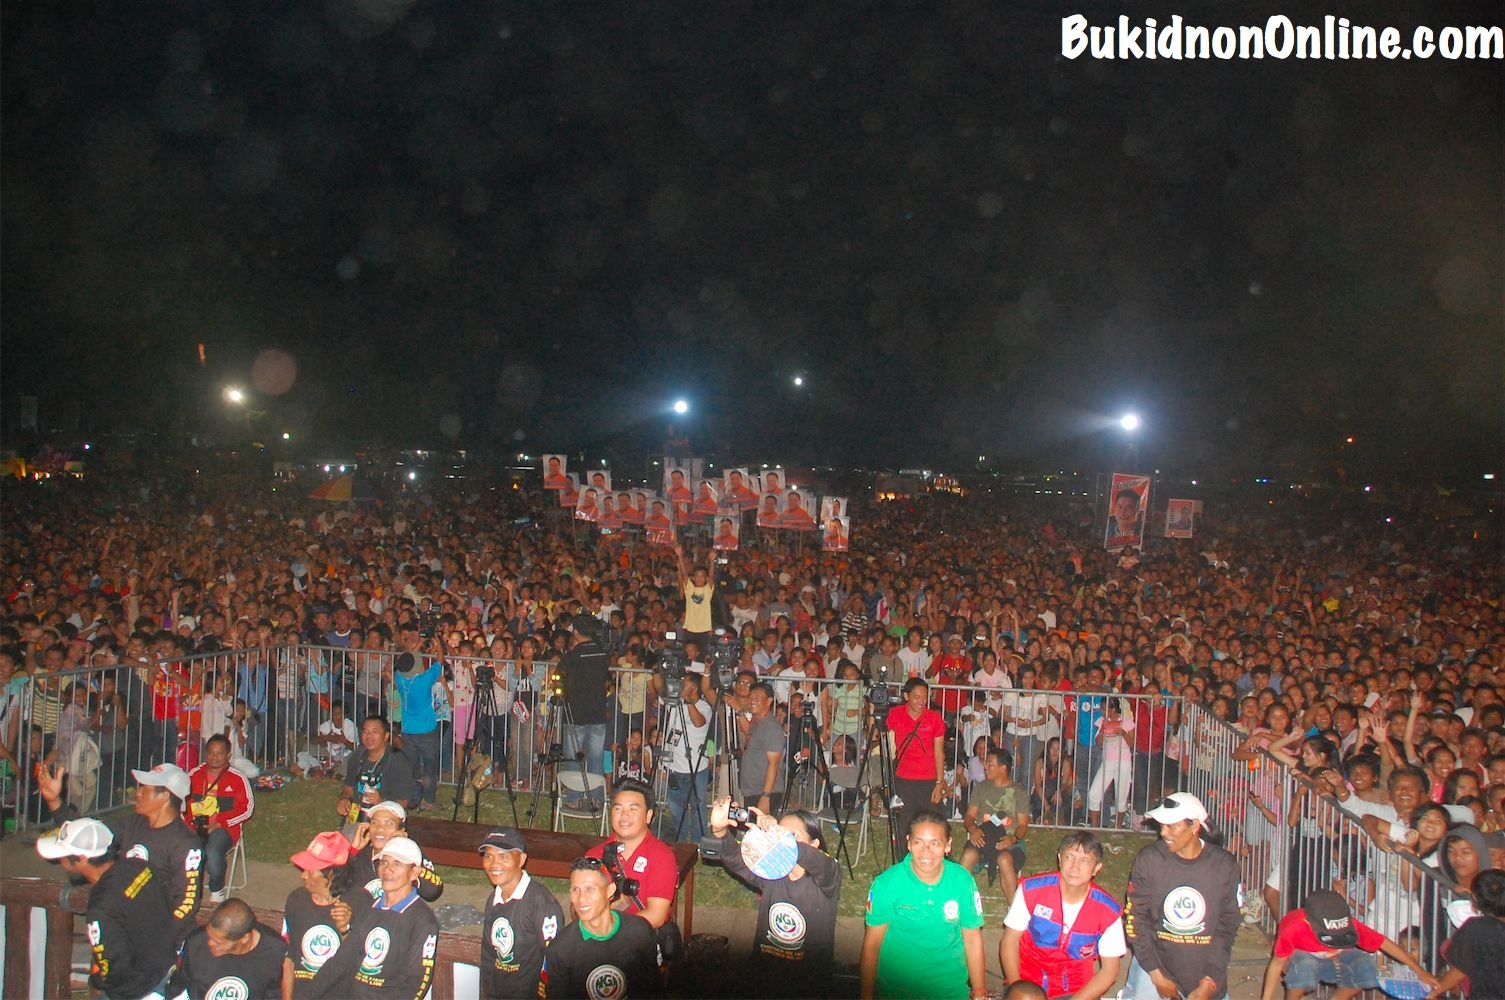 Covering the Team UNA rally in Bukidnon